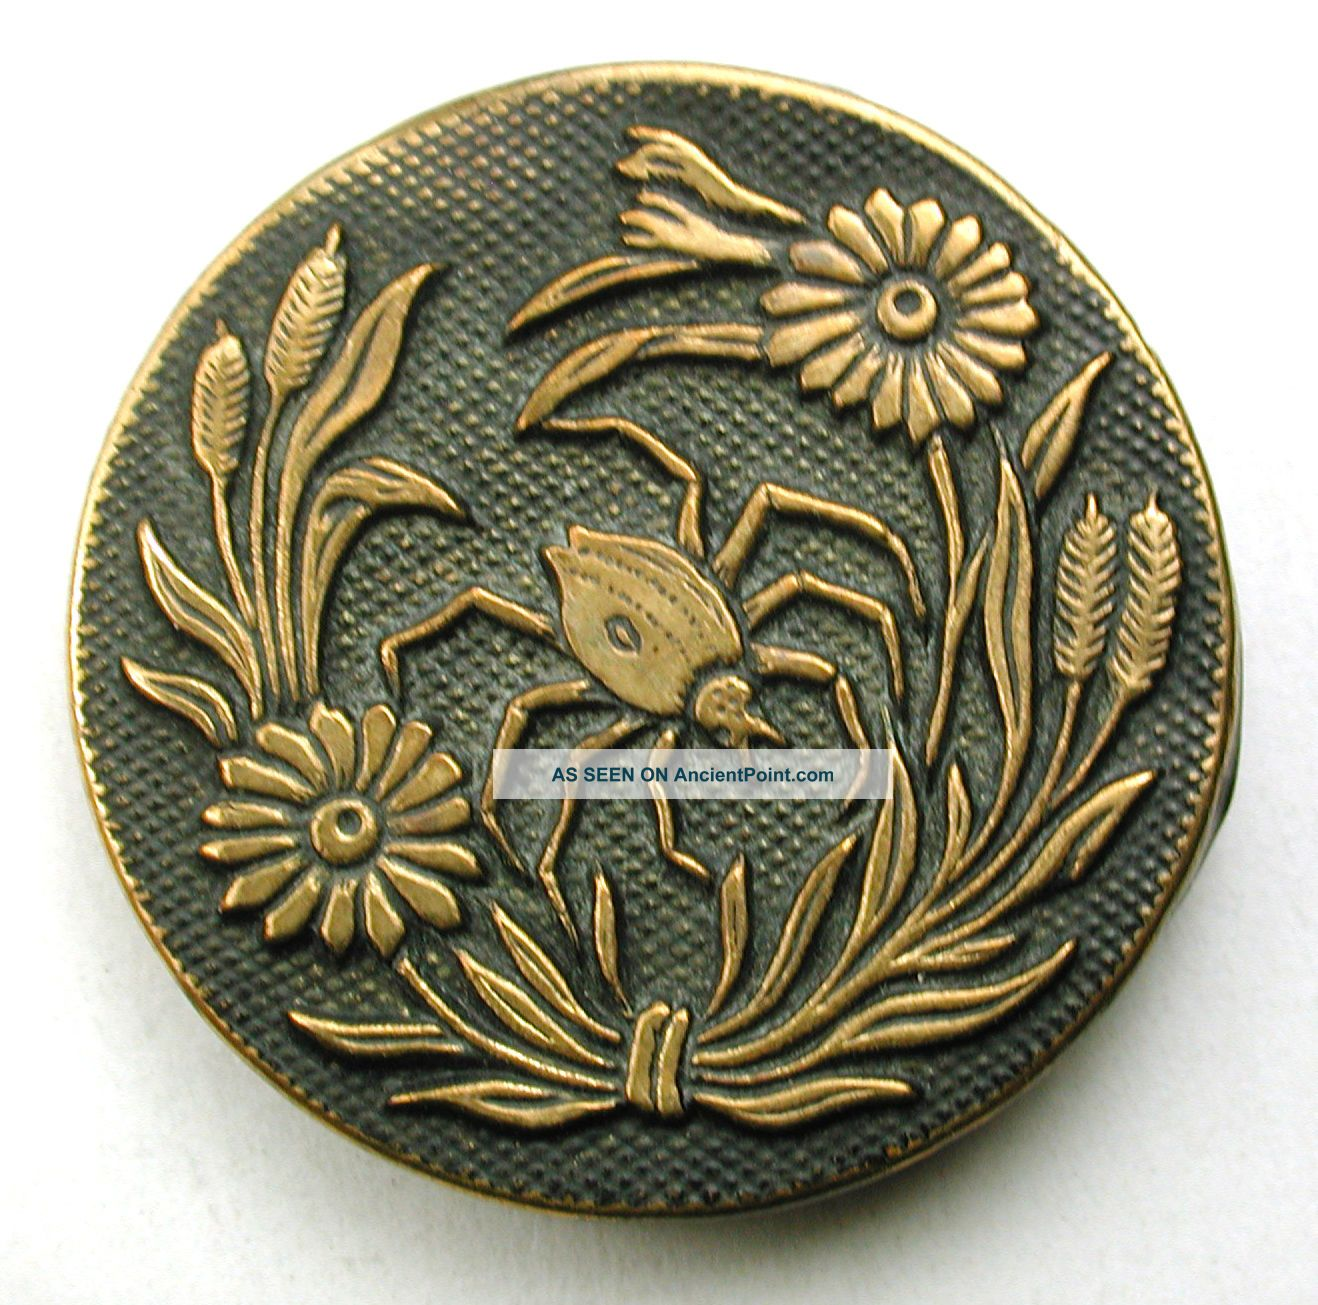 Lg Sz Antique Brass Button Detailed Garden Spider Design - 1 & 3/8